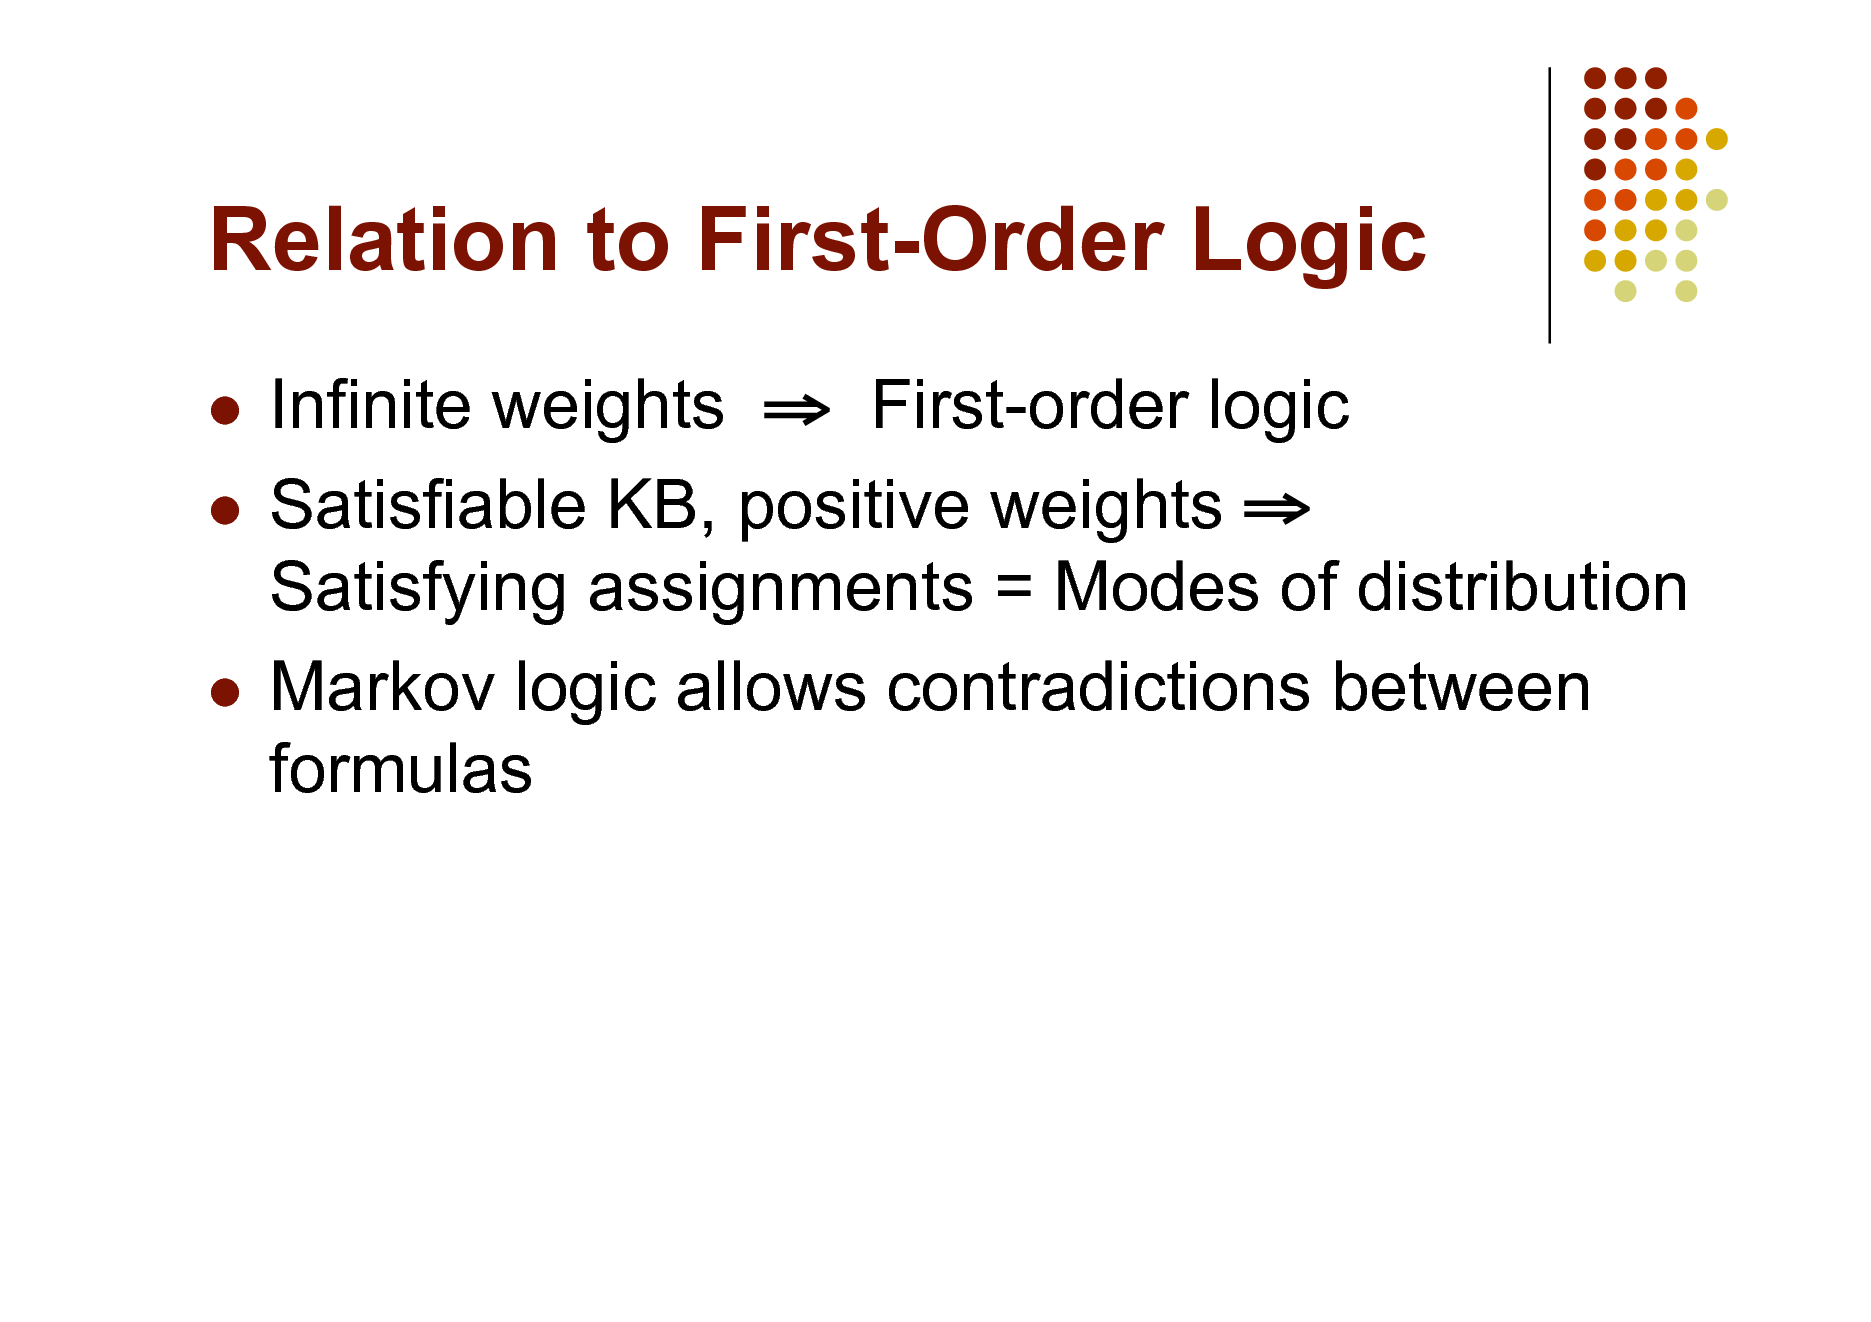 Slide: Relation to First-Order Logic Infinite weights  First-order logic  Satisfiable KB, positive weights  Satisfying assignments = Modes of distribution  Markov logic allows contradictions between formulas